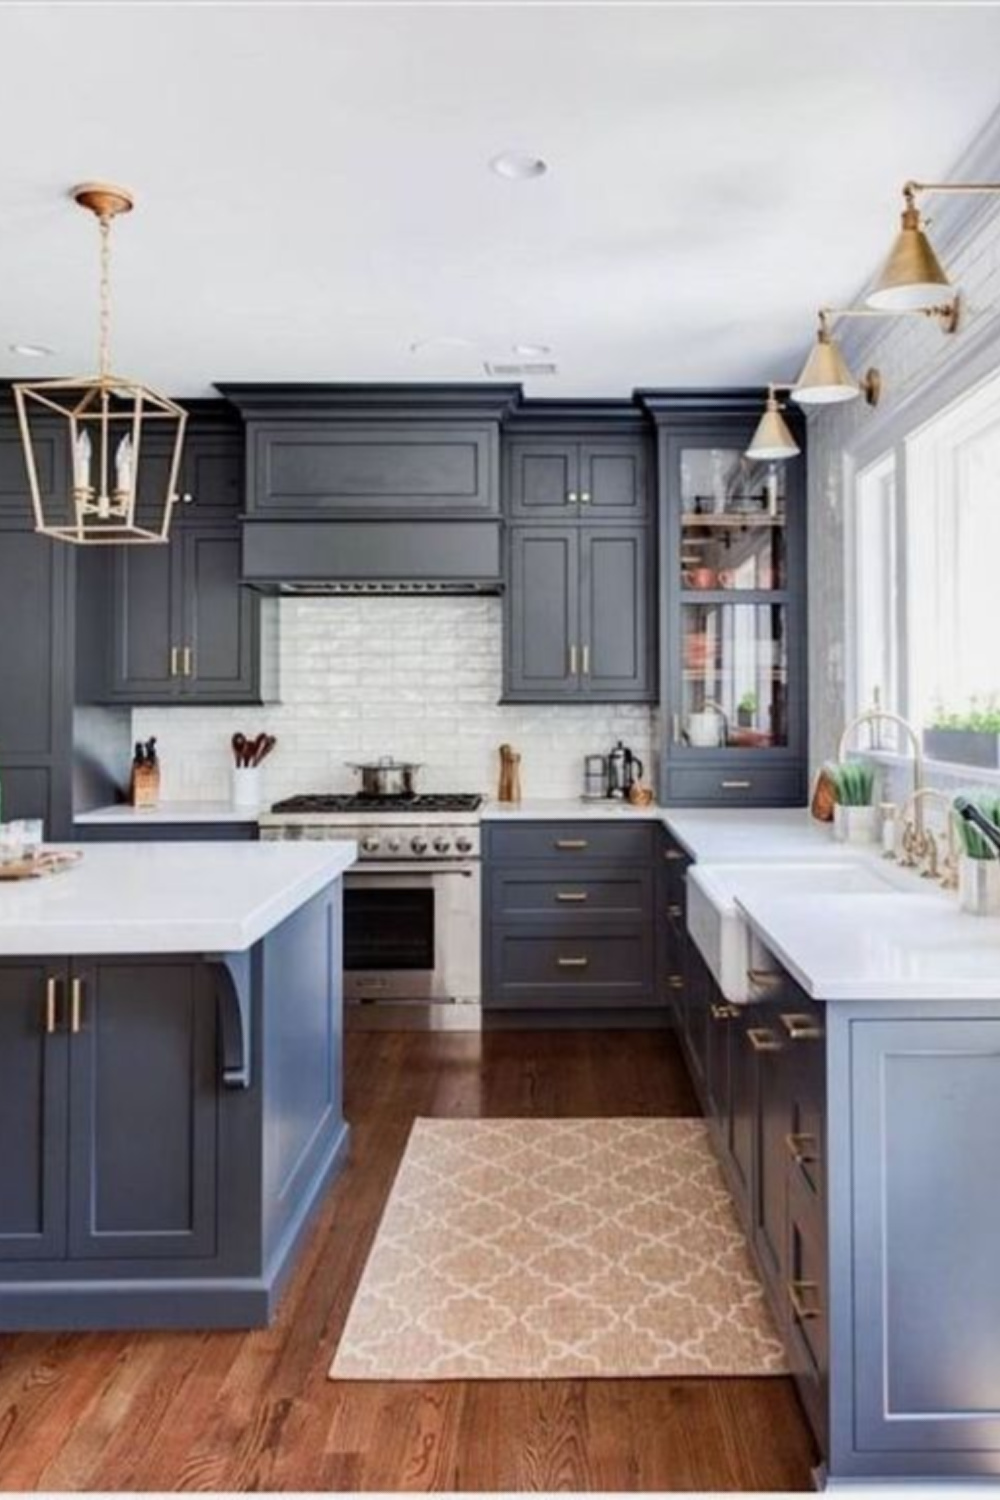 Navy blue kitchen cabinets, white counters, and brass hardware in a traditional classic design - Stonington Cabinetry. #bluekitchens #kitchendesign #blueandwhitekitchen